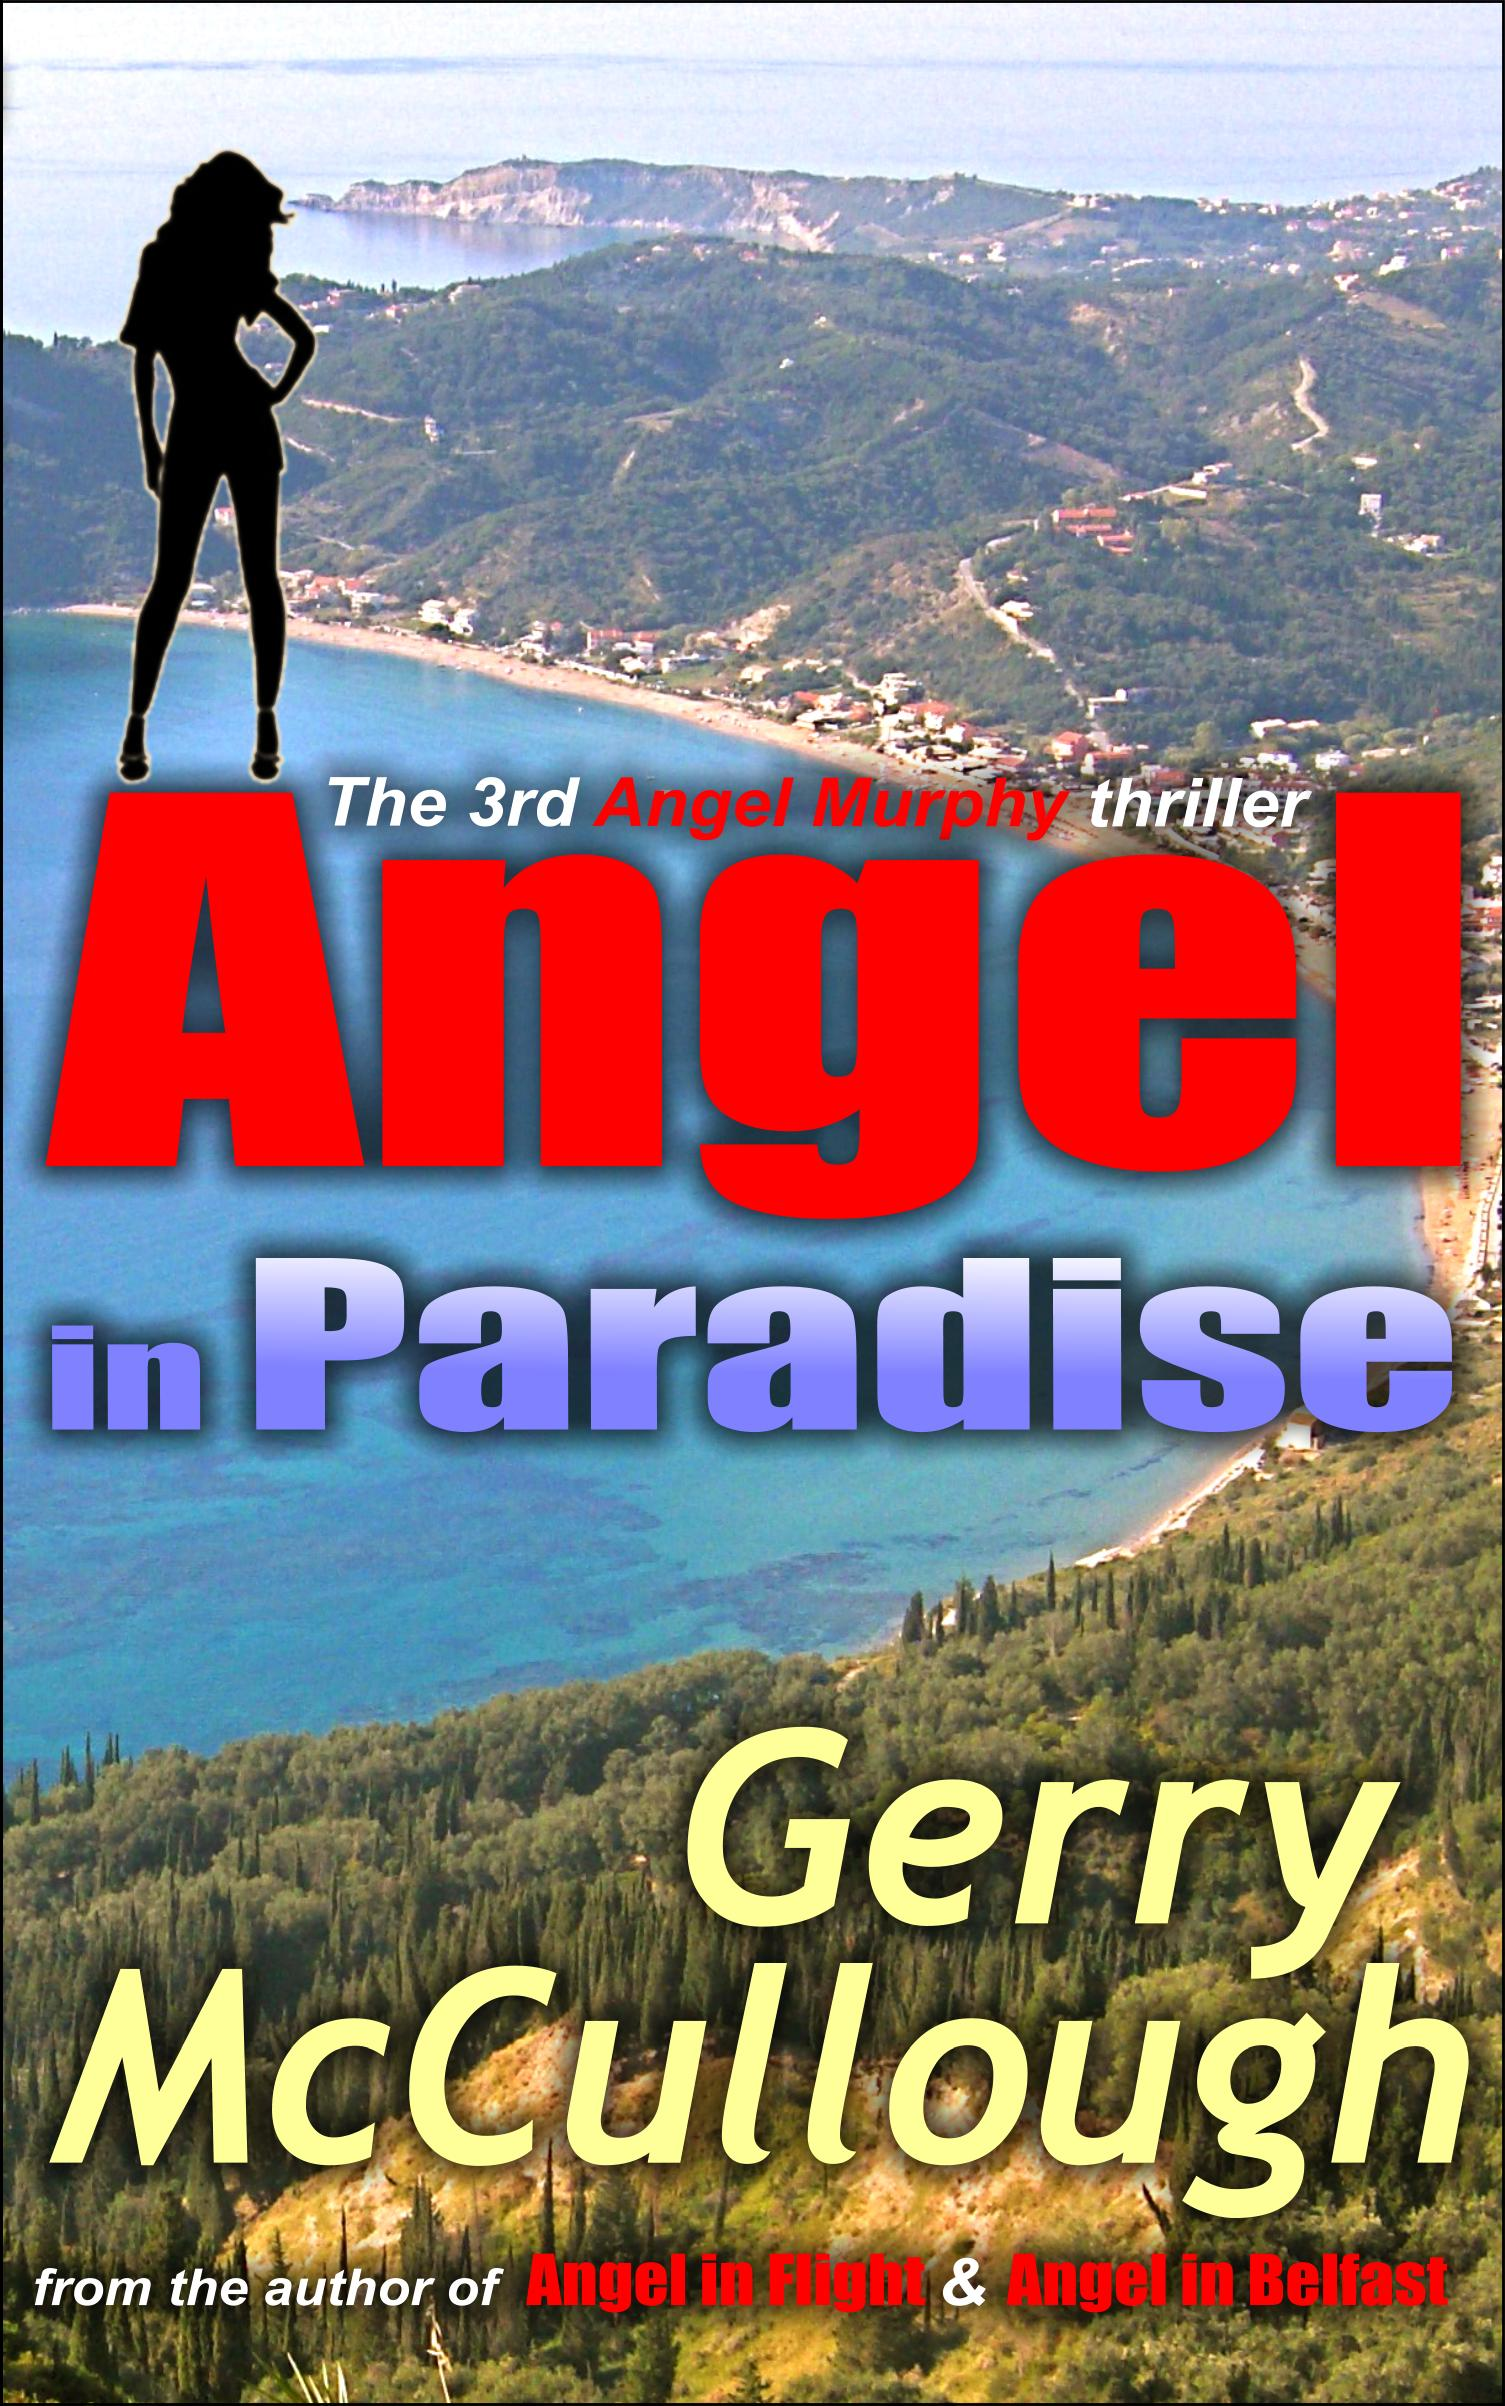 Buy Angel in Paradise from Amazon & other outlets